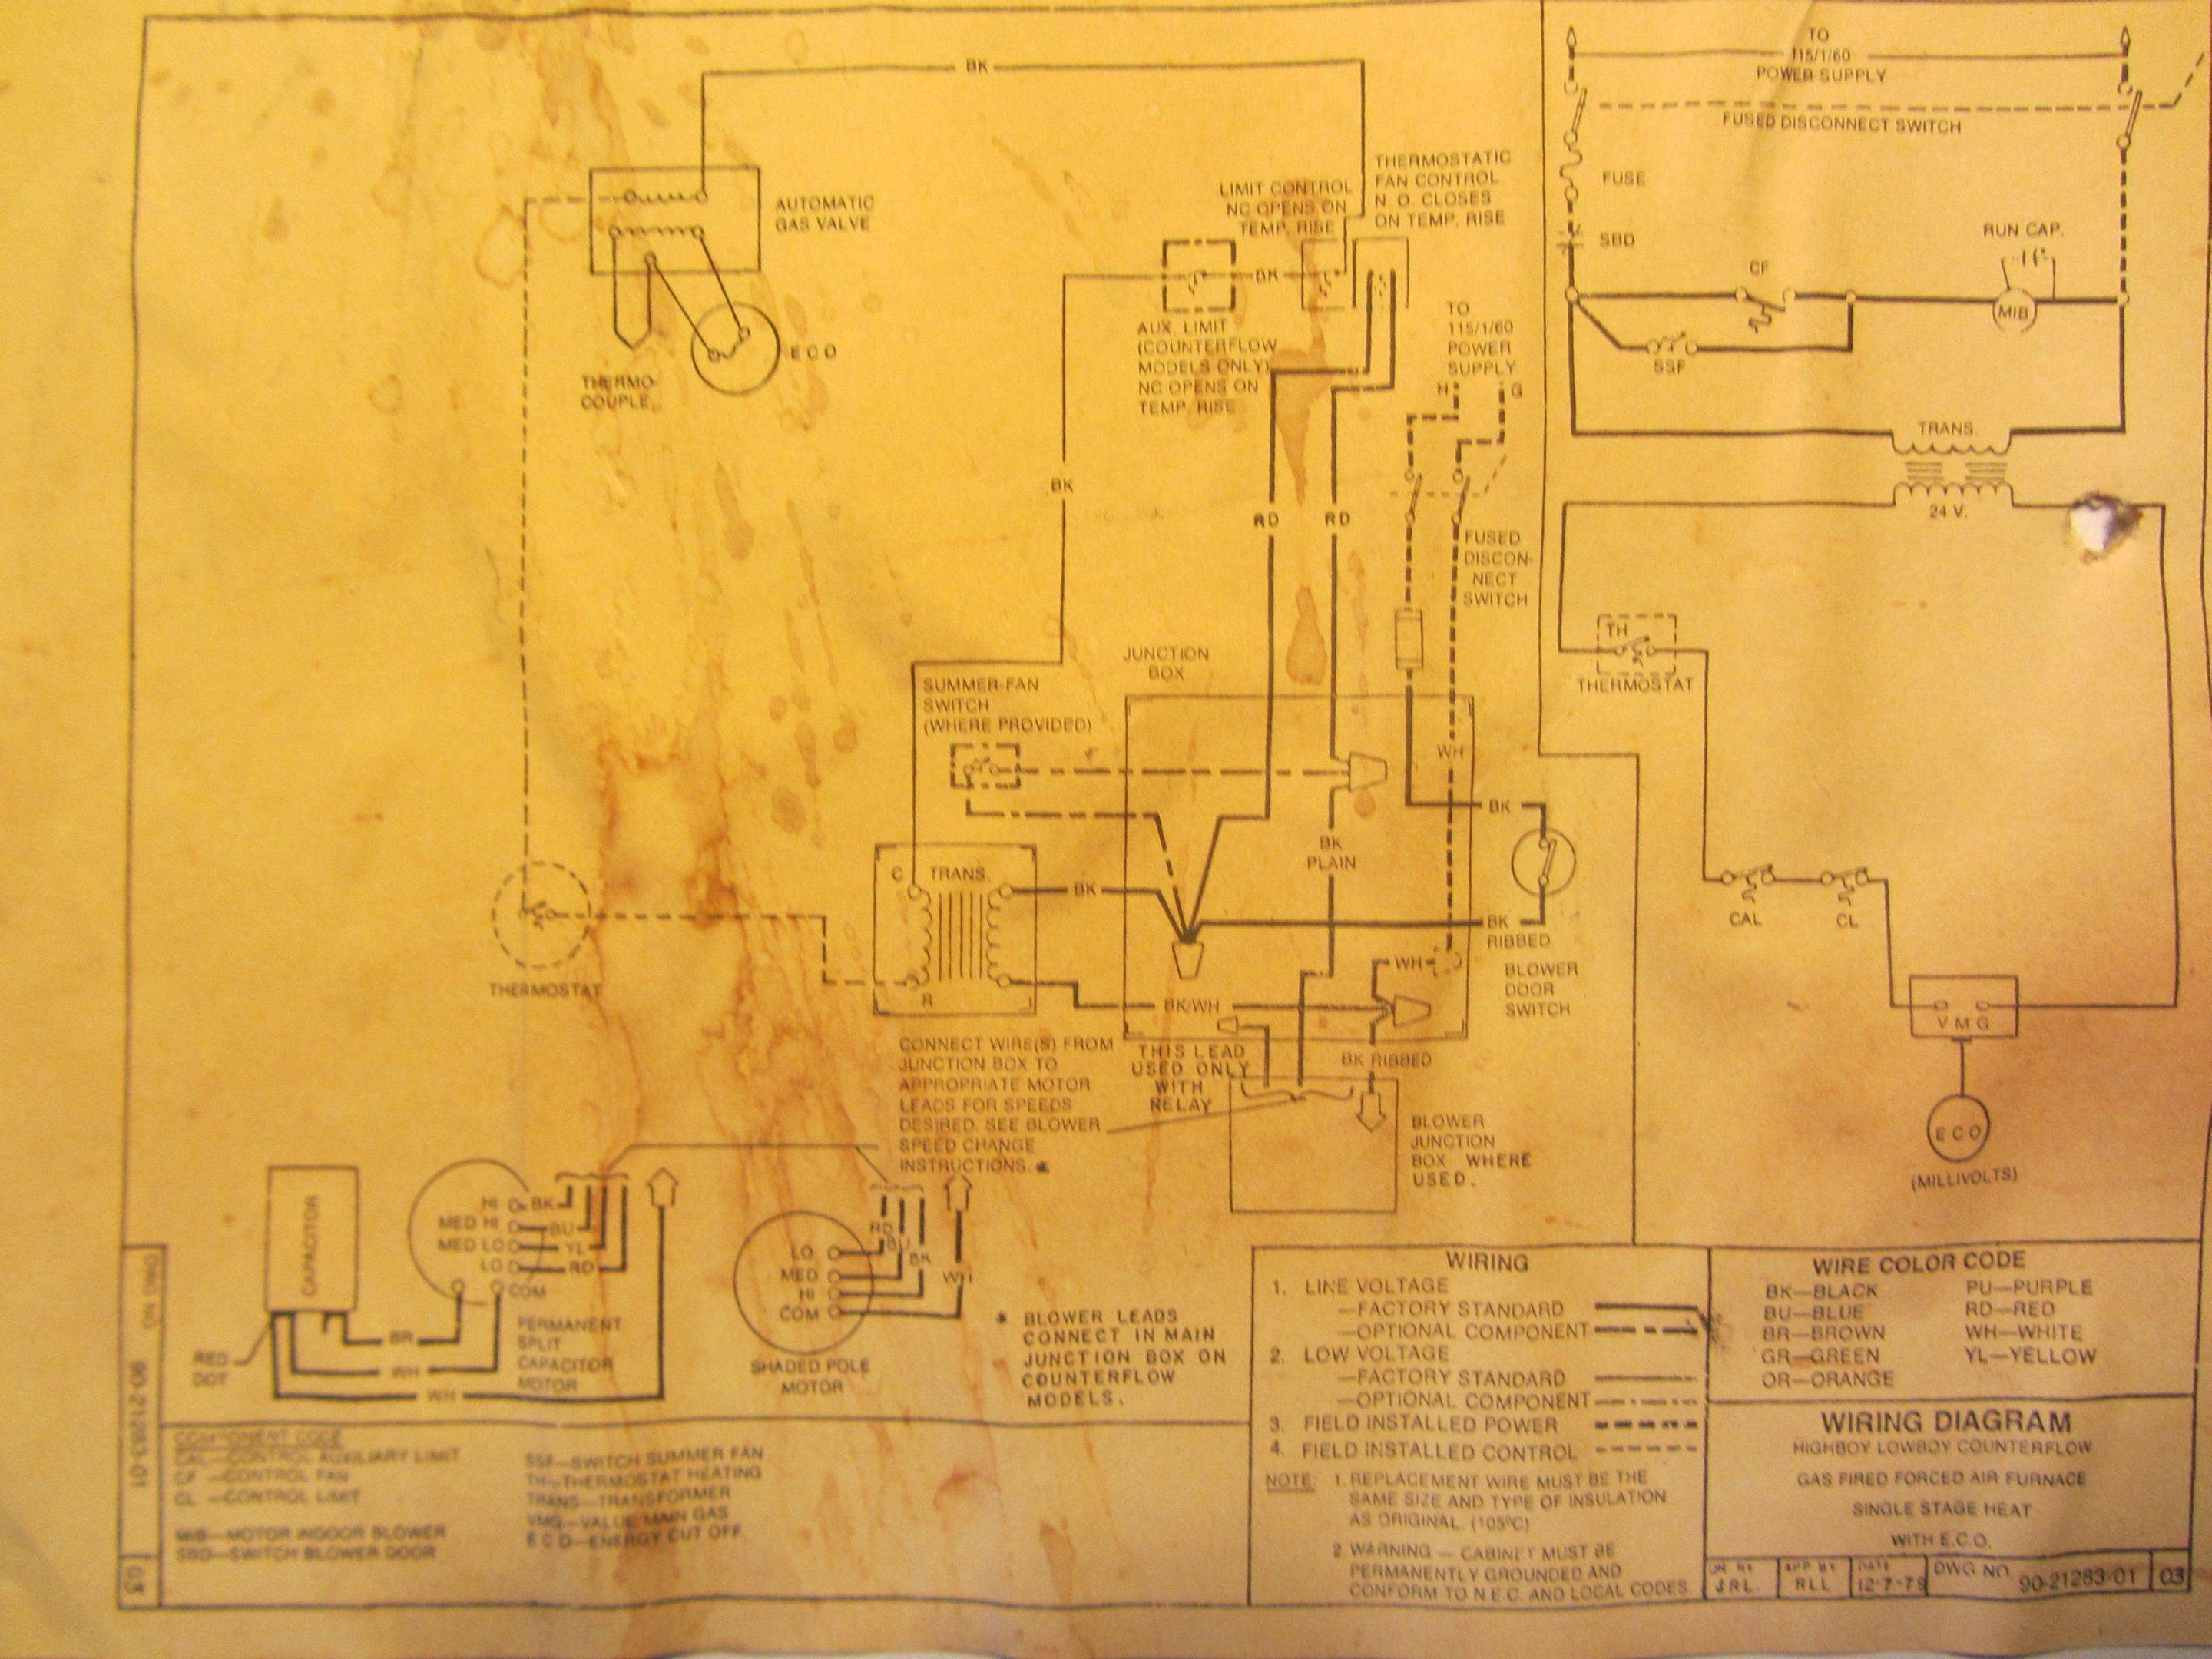 hvac wiring diagram thermostat electronic ballast - add a c-wire to 25+ year old rheem furnace home improvement stack exchange